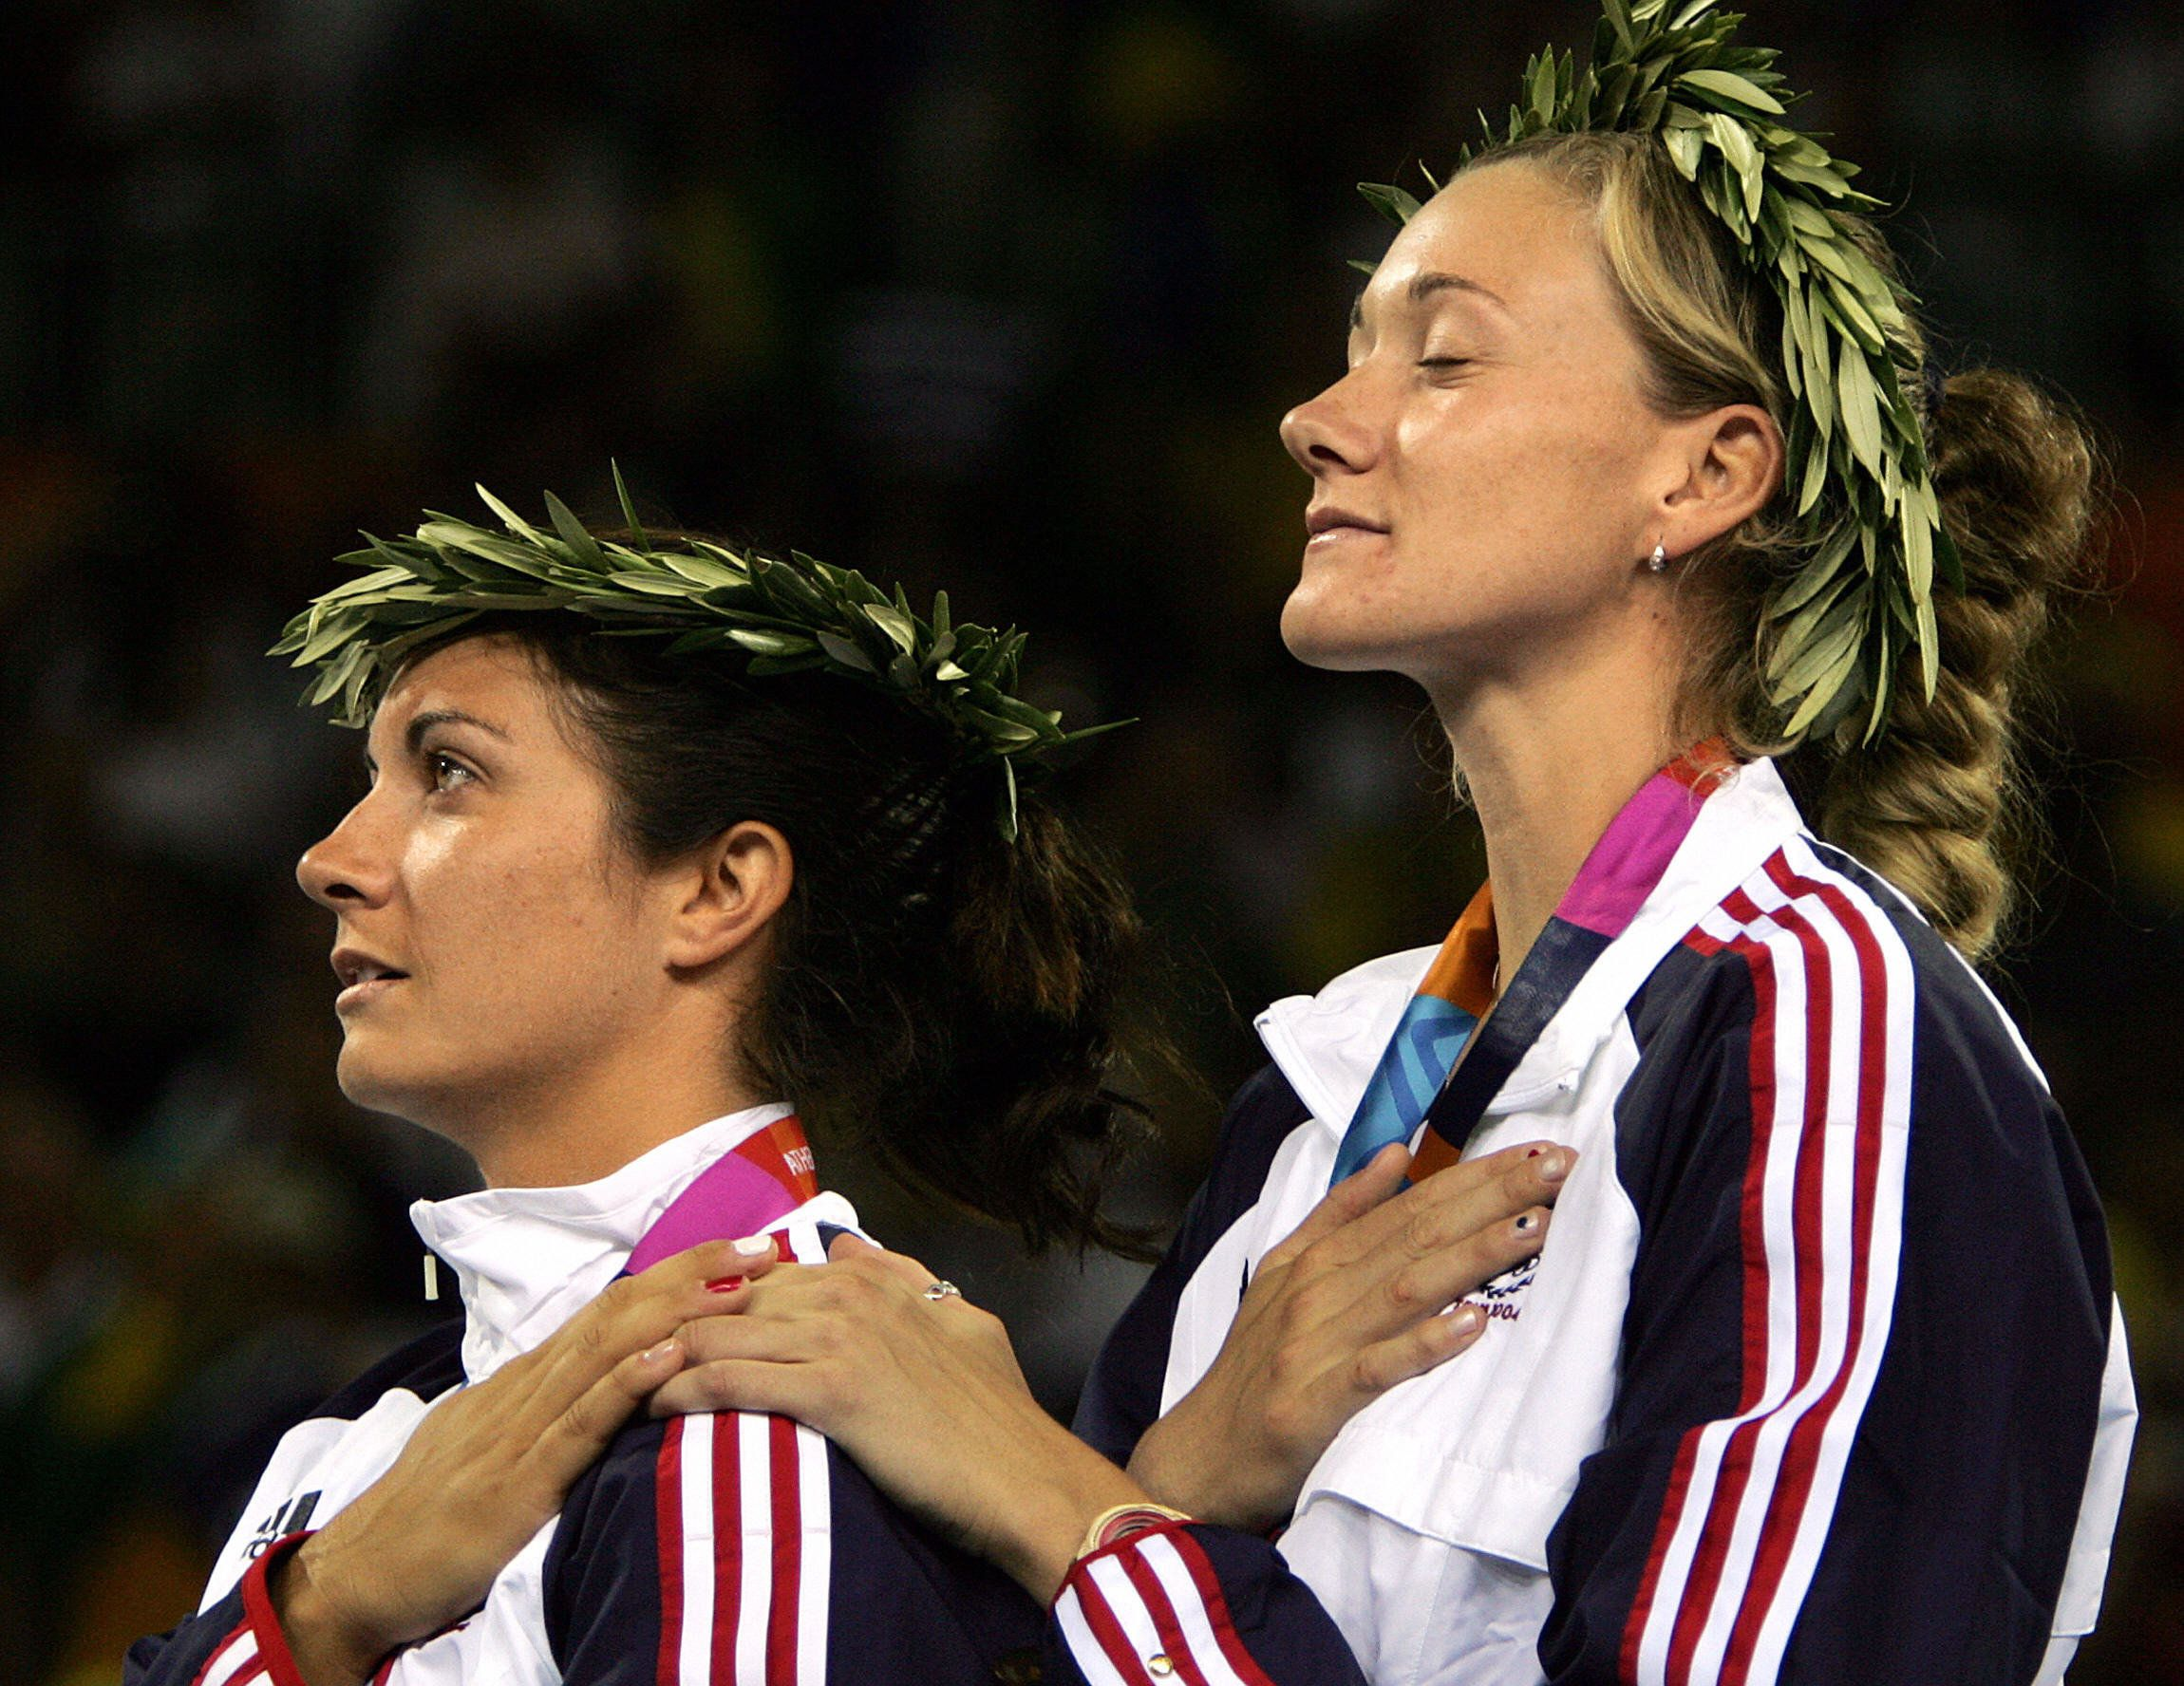 Athens, GREECE:  US beach volley players Kerri Walsh kisses (R) and Misty May celebrate their gold medal after they won over Brazilian Adriana Behar and Shelda Bede, 24 August 2004 in Athens at the 2004 Olympic Games. AFP PHOTO PHILIPPE DESMAZES  (Photo credit should read PHILIPPE DESMAZES/AFP/Getty Images)